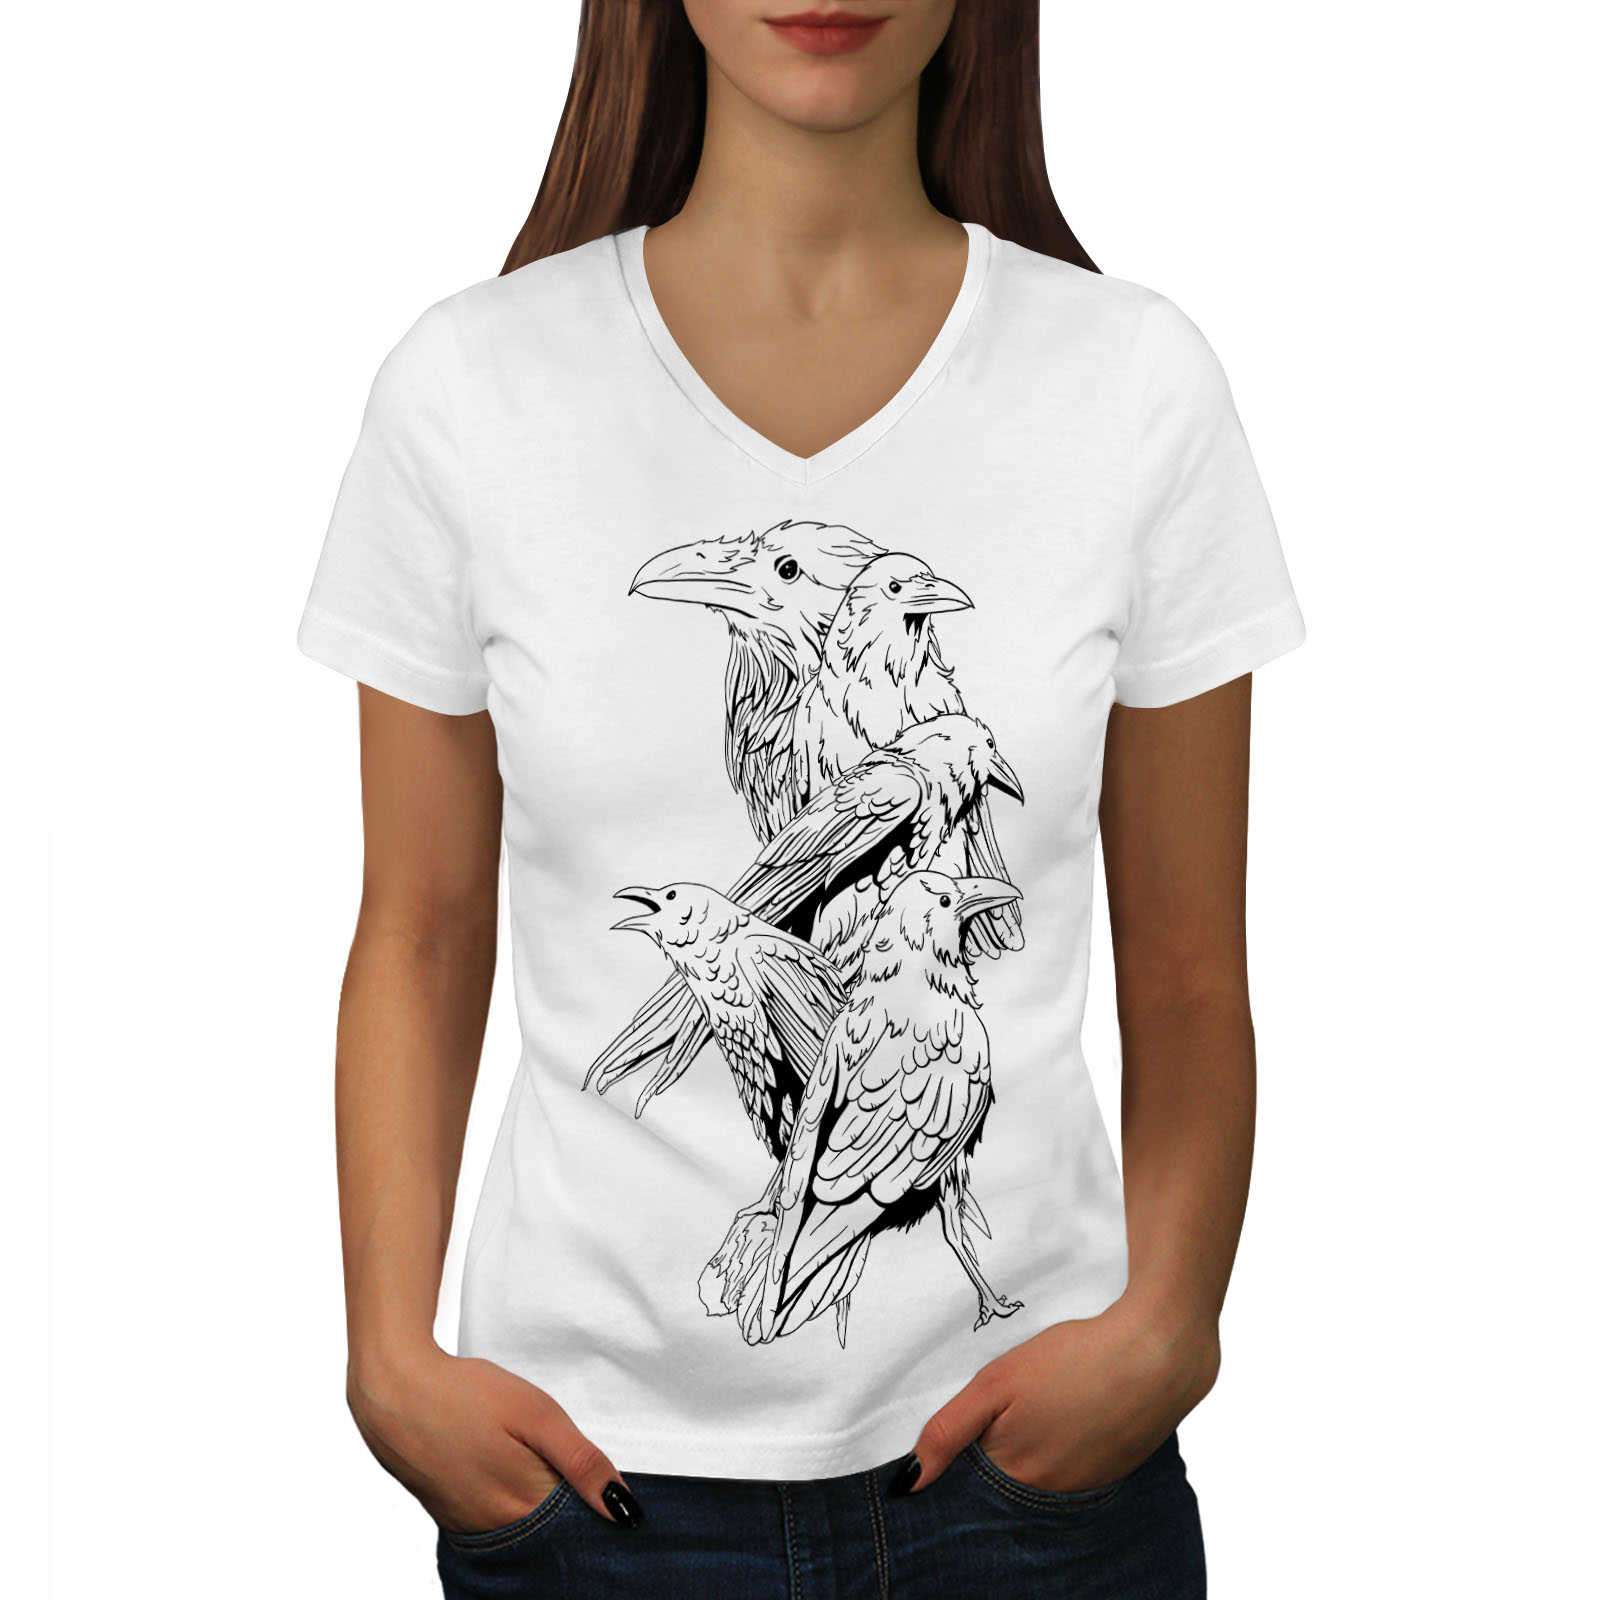 Wellcoda-Four-Scary-Raven-Womens-V-Neck-T-shirt-Crow-Birds-Graphic-Design-Tee thumbnail 7